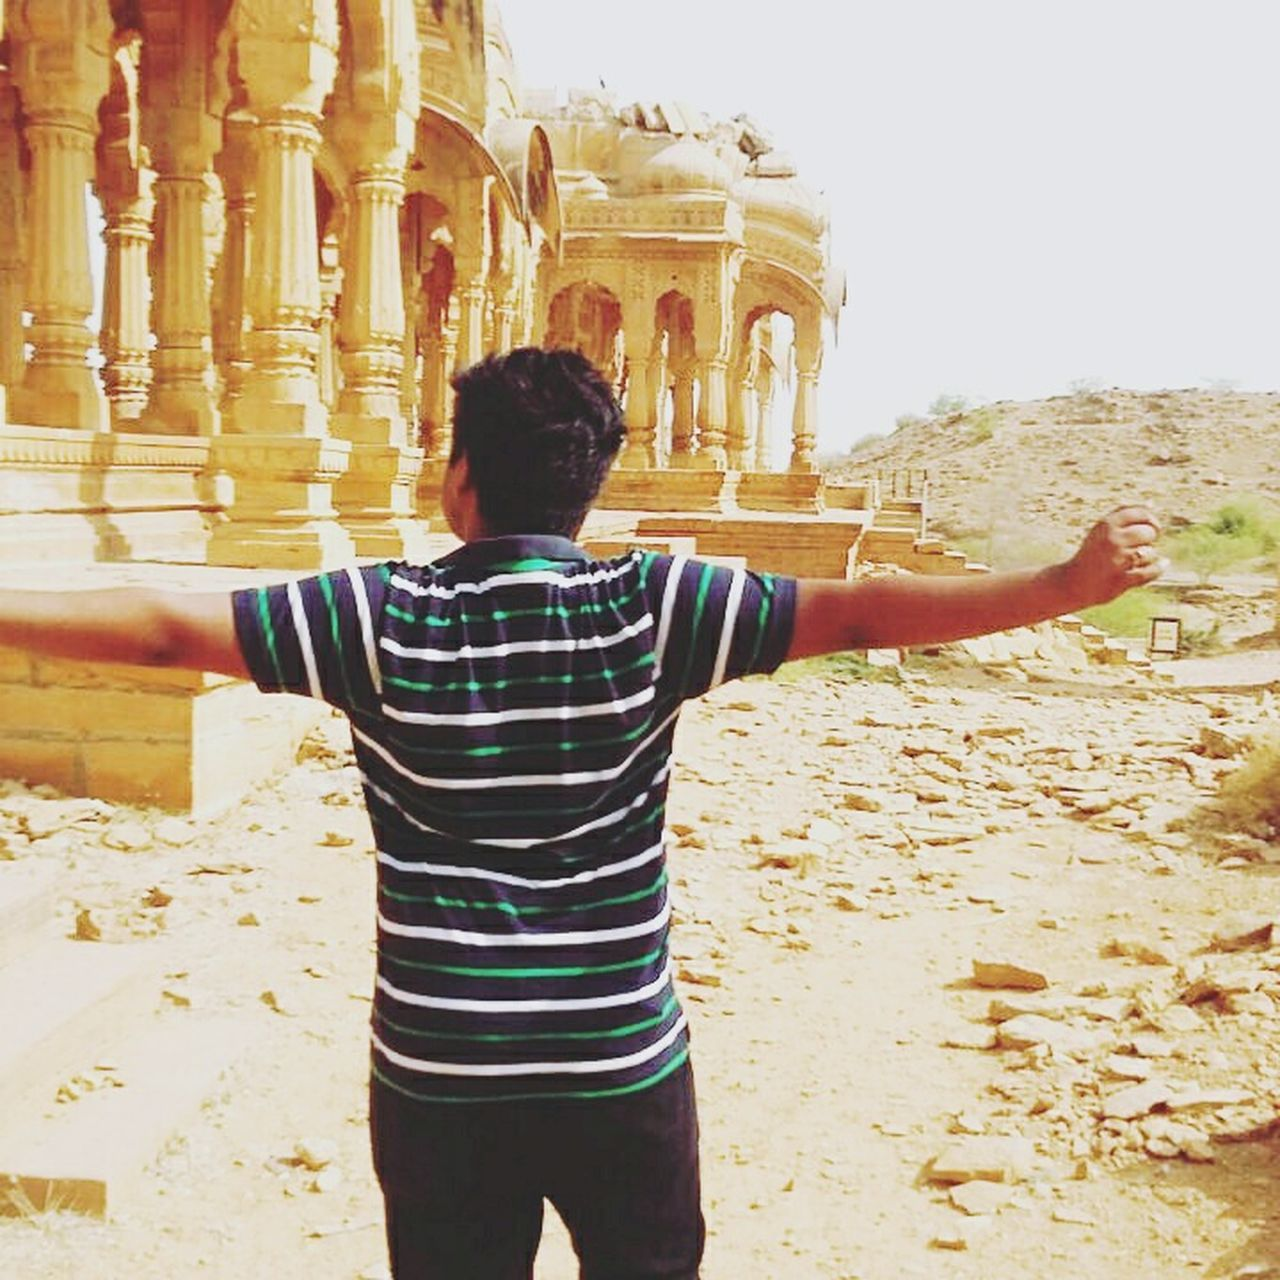 Desert Jaisalmer Barabagh Summer Tired Trip